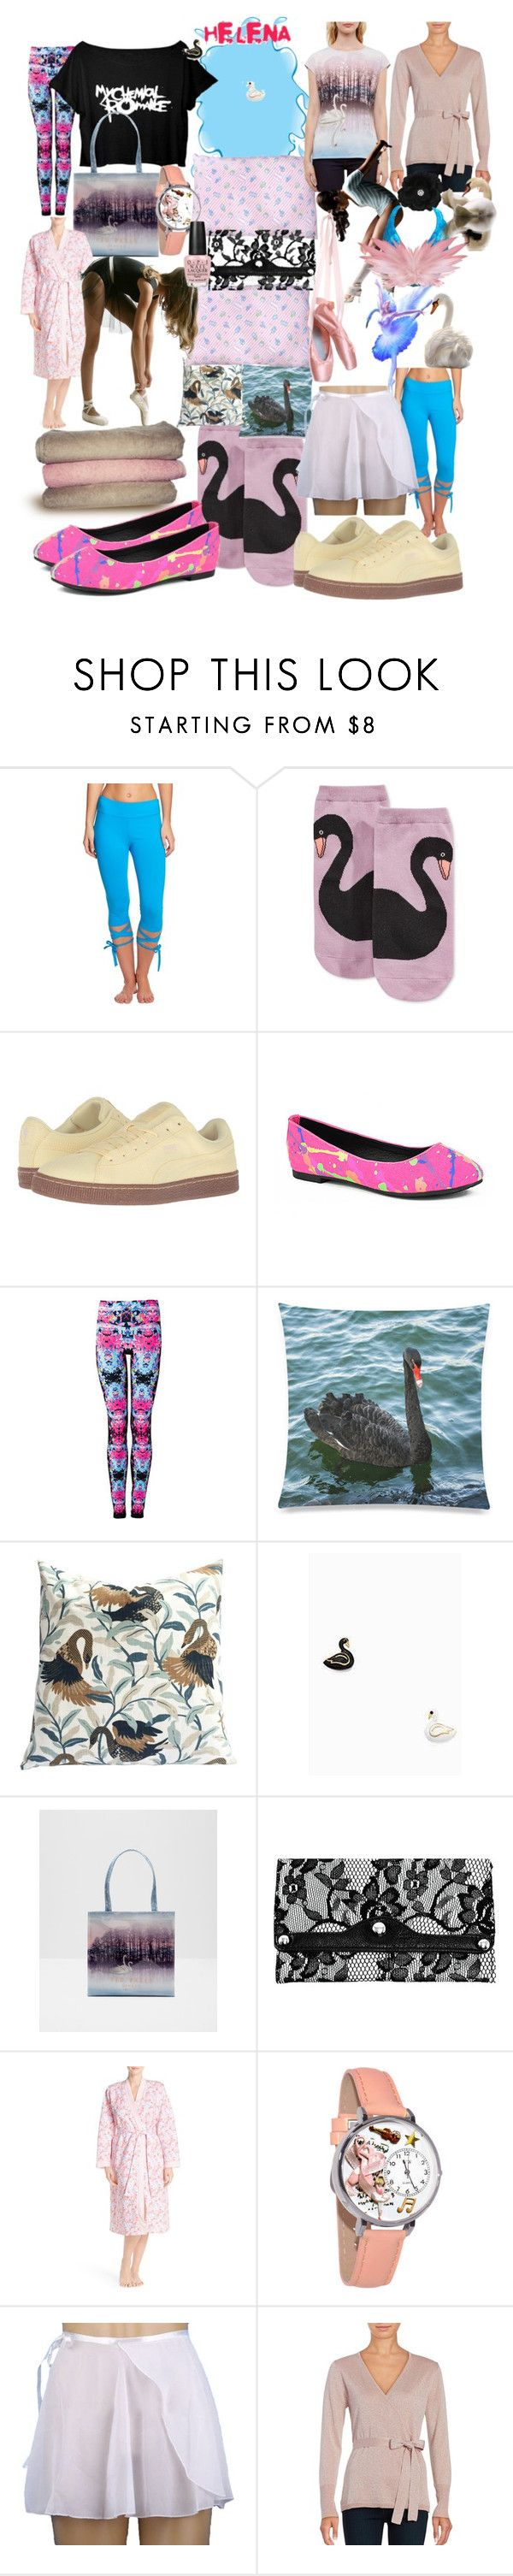 """Glide like that"" by lerp ❤ liked on Polyvore featuring Jala Clothing, Kate Spade, Puma, Black Swan, Ted Baker, Parinda, Carole Hochman, Whimsical Watches and Ivanka Trump"